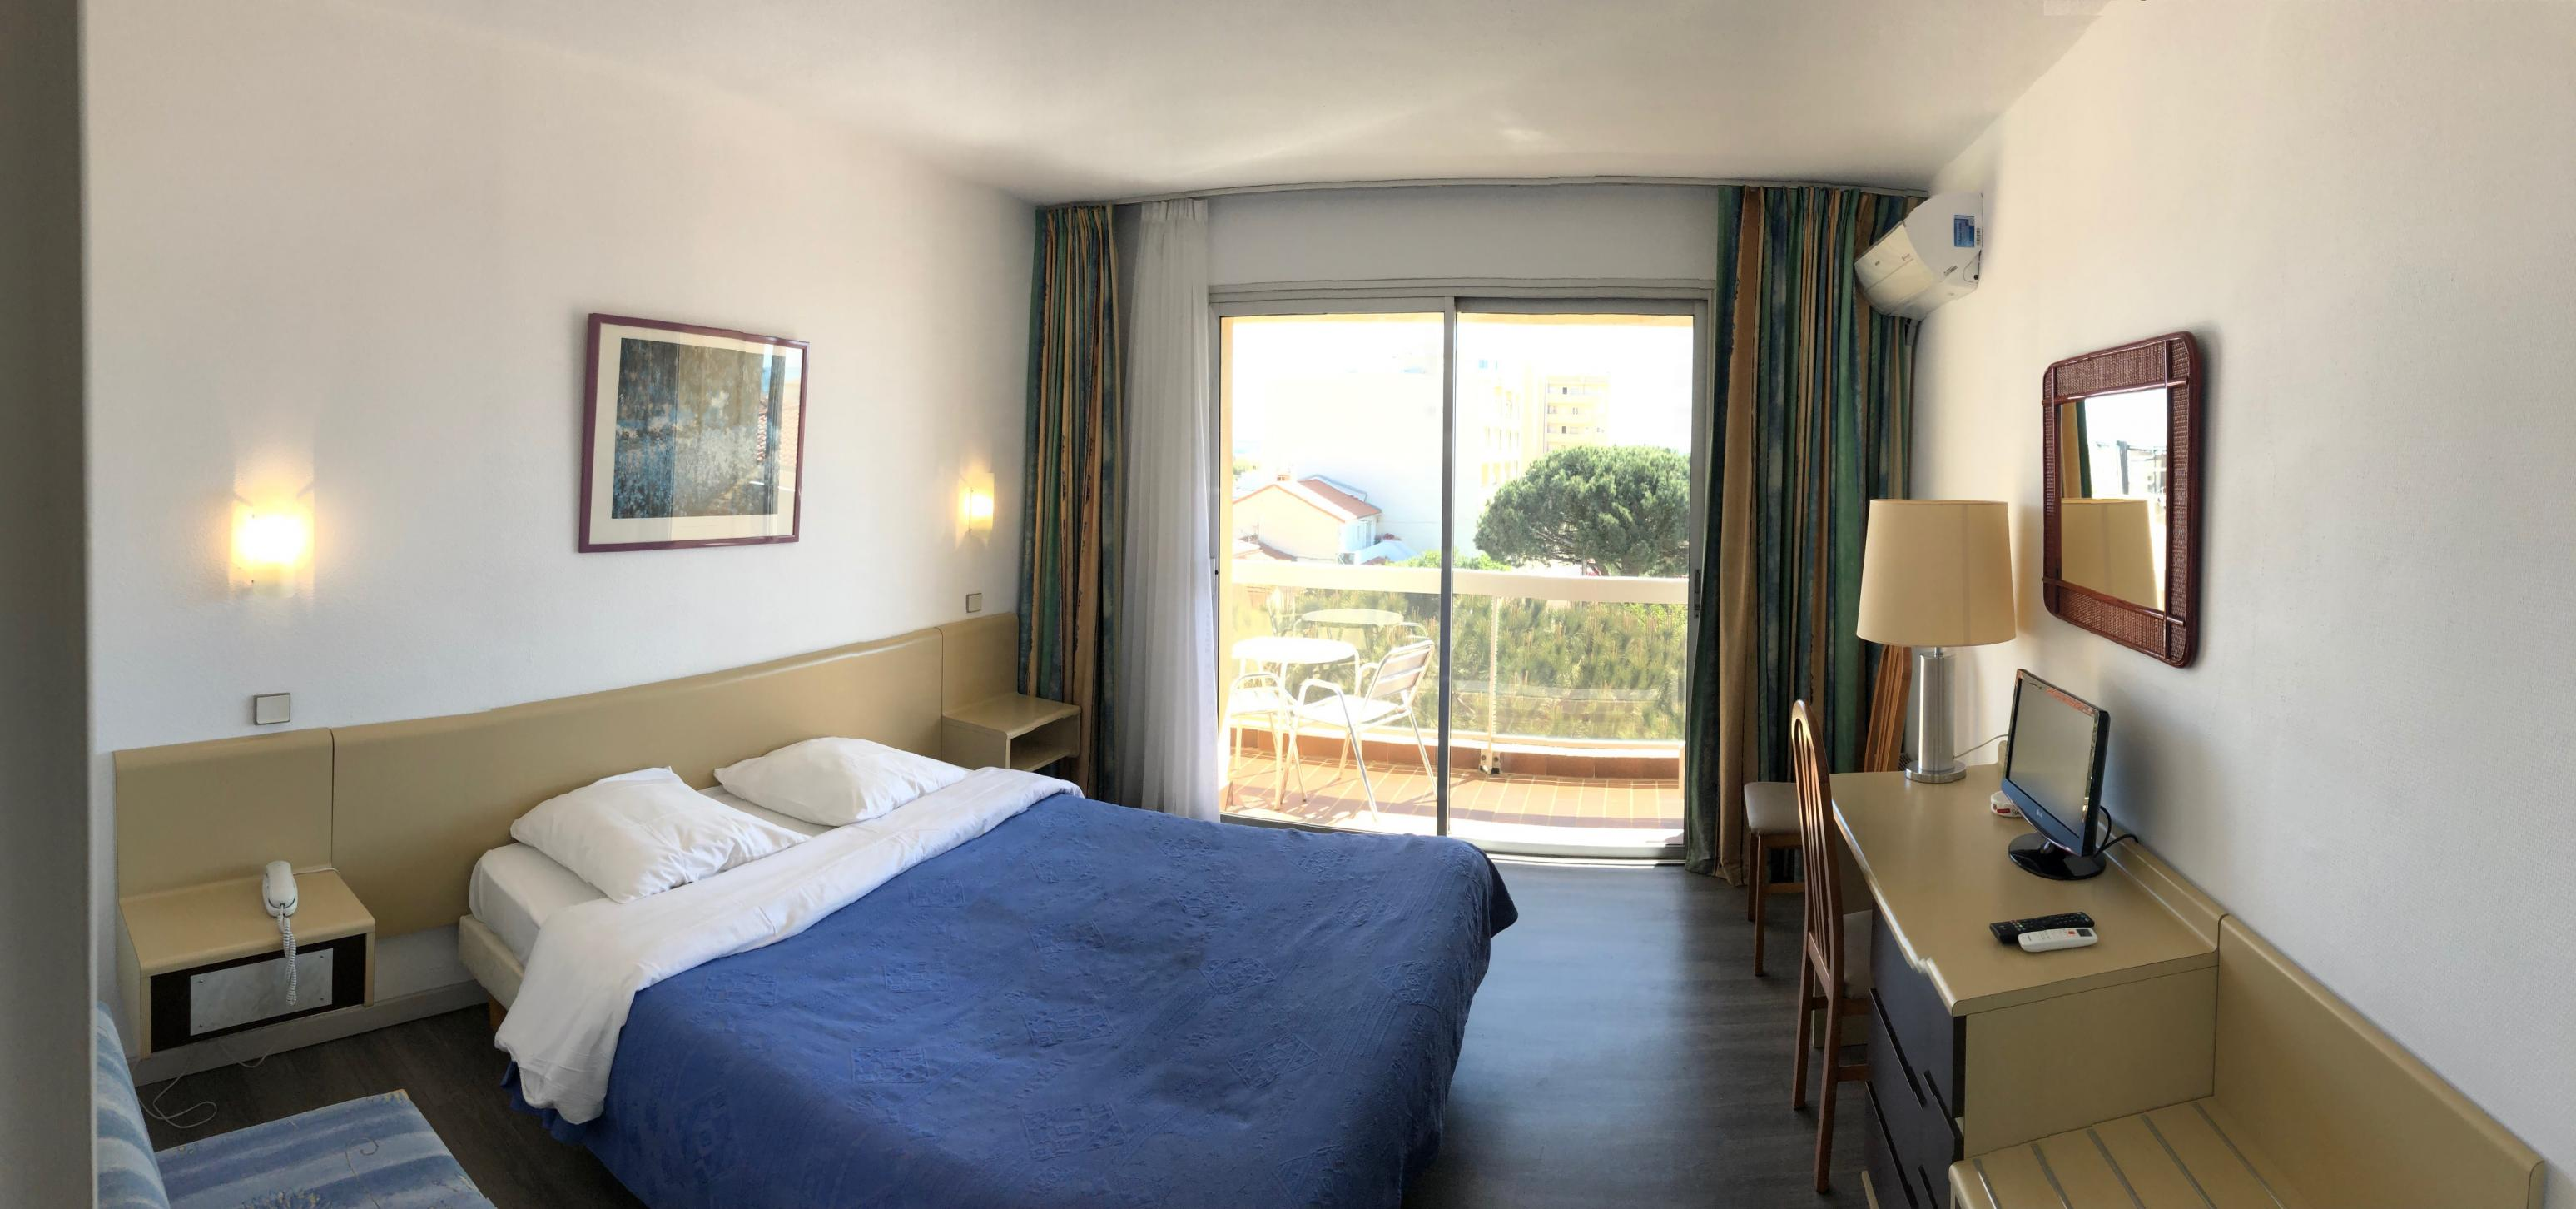 Rooms of the hotel in Canet-en-Roussillon by the sea | ***Hotel du Port